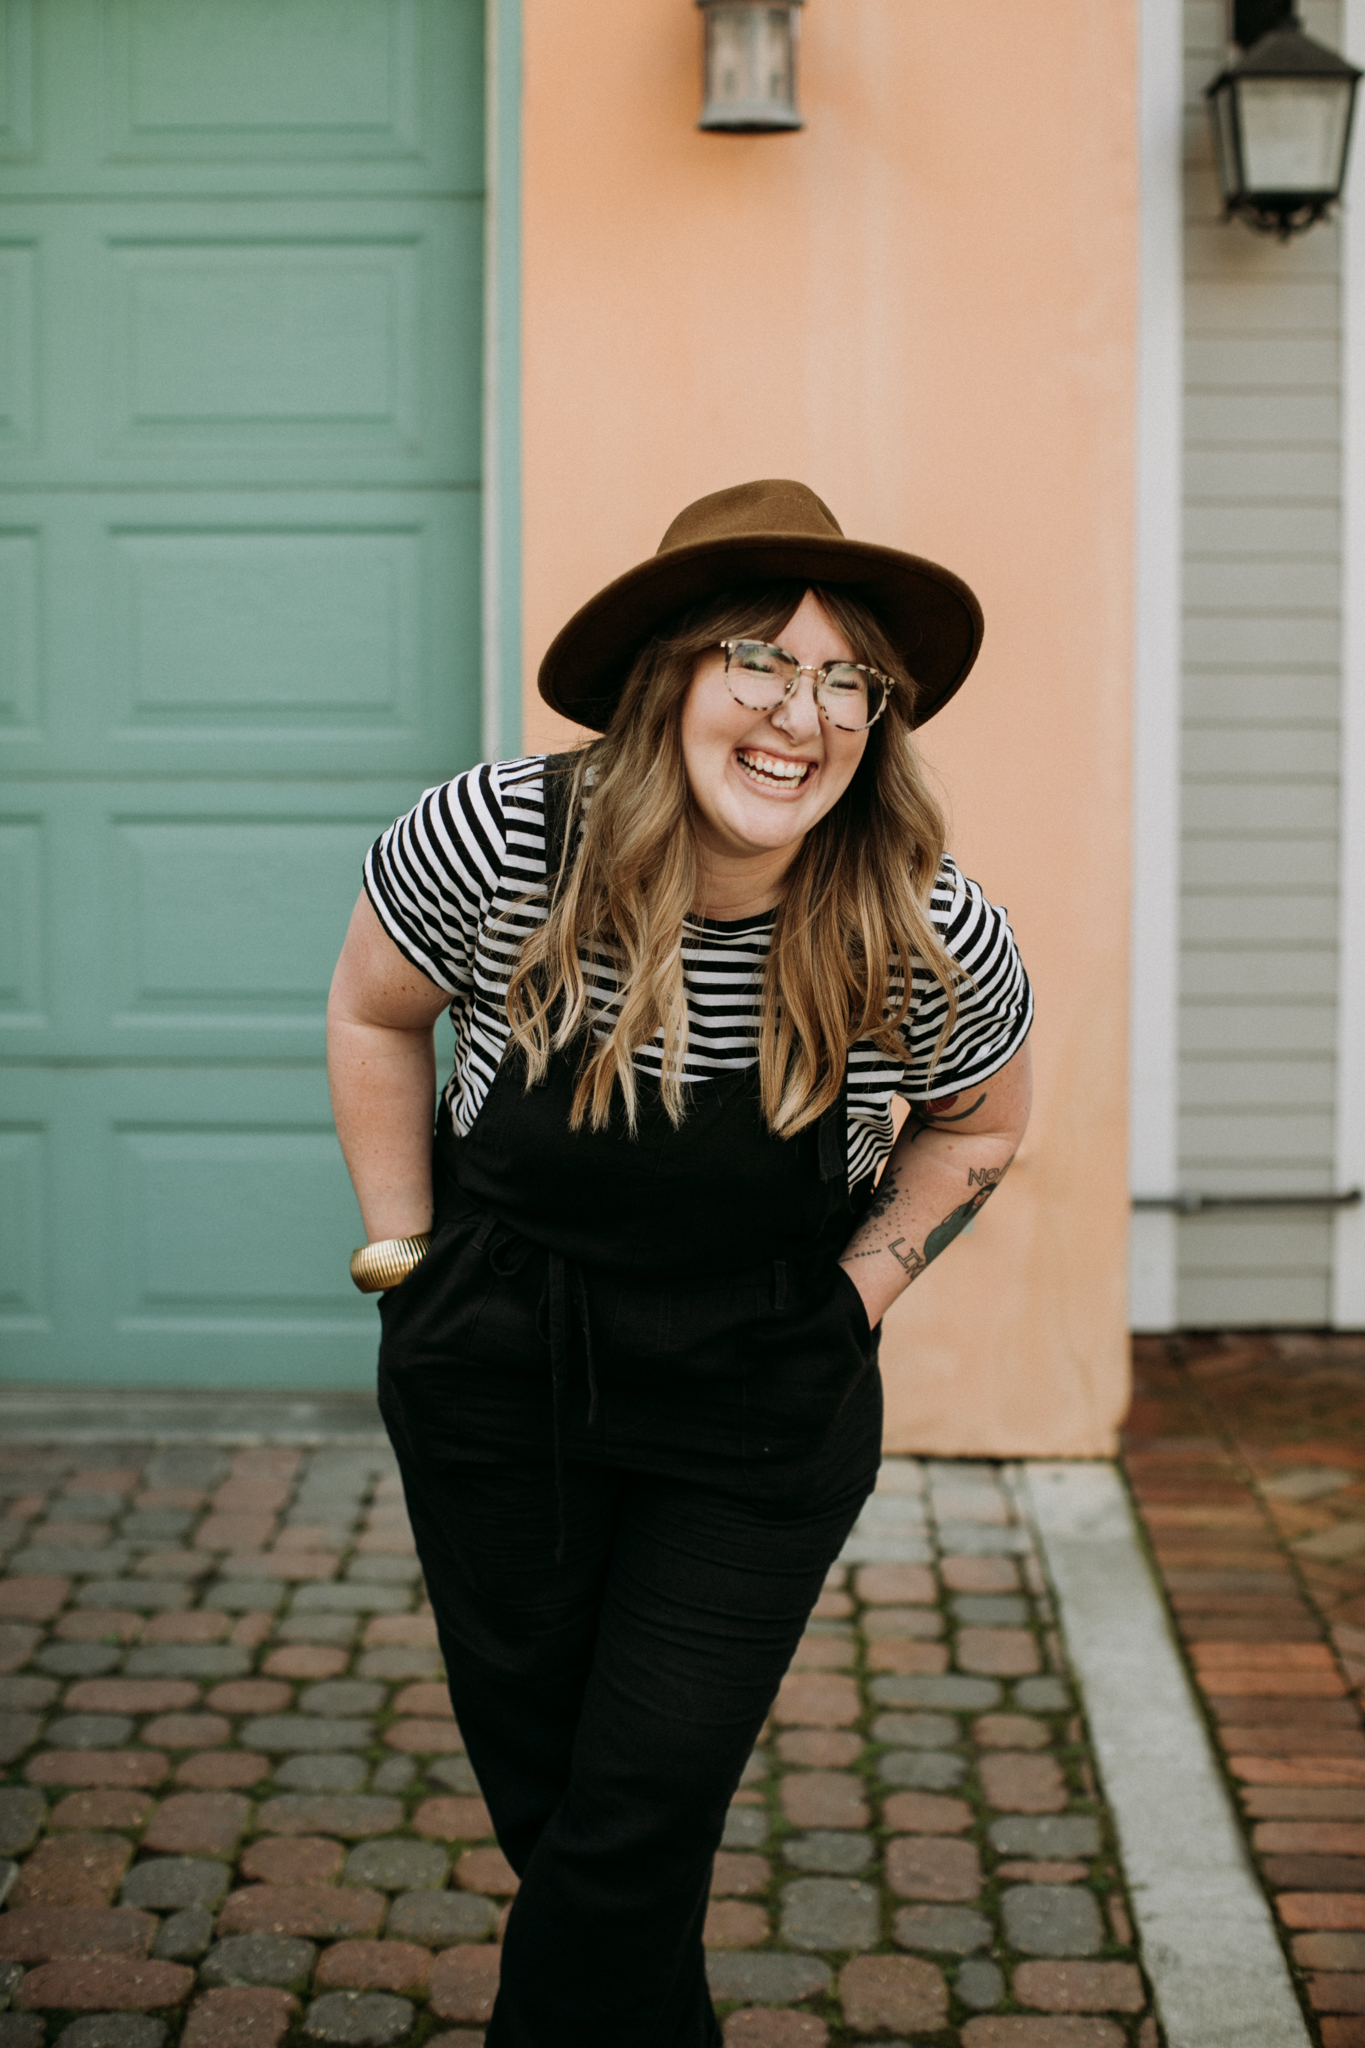 Hey there!! - I'm Kacie! I am a mom, a partner and the face behind Kacie Jones Photography. I truly had no idea what I was going to do with my life until I found photography. I've always had a love affair with the arts, and once thought I'd be a painter, an animator, and a slew of other things that I picked up only to put down within a year or so. But the camera is the one thing I've never been able to put down. It keeps me challenged and excited and I cannot imagine doing anything other than telling people's stories through my lens! When I'm not pouring my heart and soul into this thing, you can find me chasing after my ragamuffins or loving on my husband. I am somewhat a homebody and love a well decorated, candlelit house, being surrounded by plants and dancing around the kitchen to some soul music with a coffee in hand. 🖤I look forward to getting to know you!!